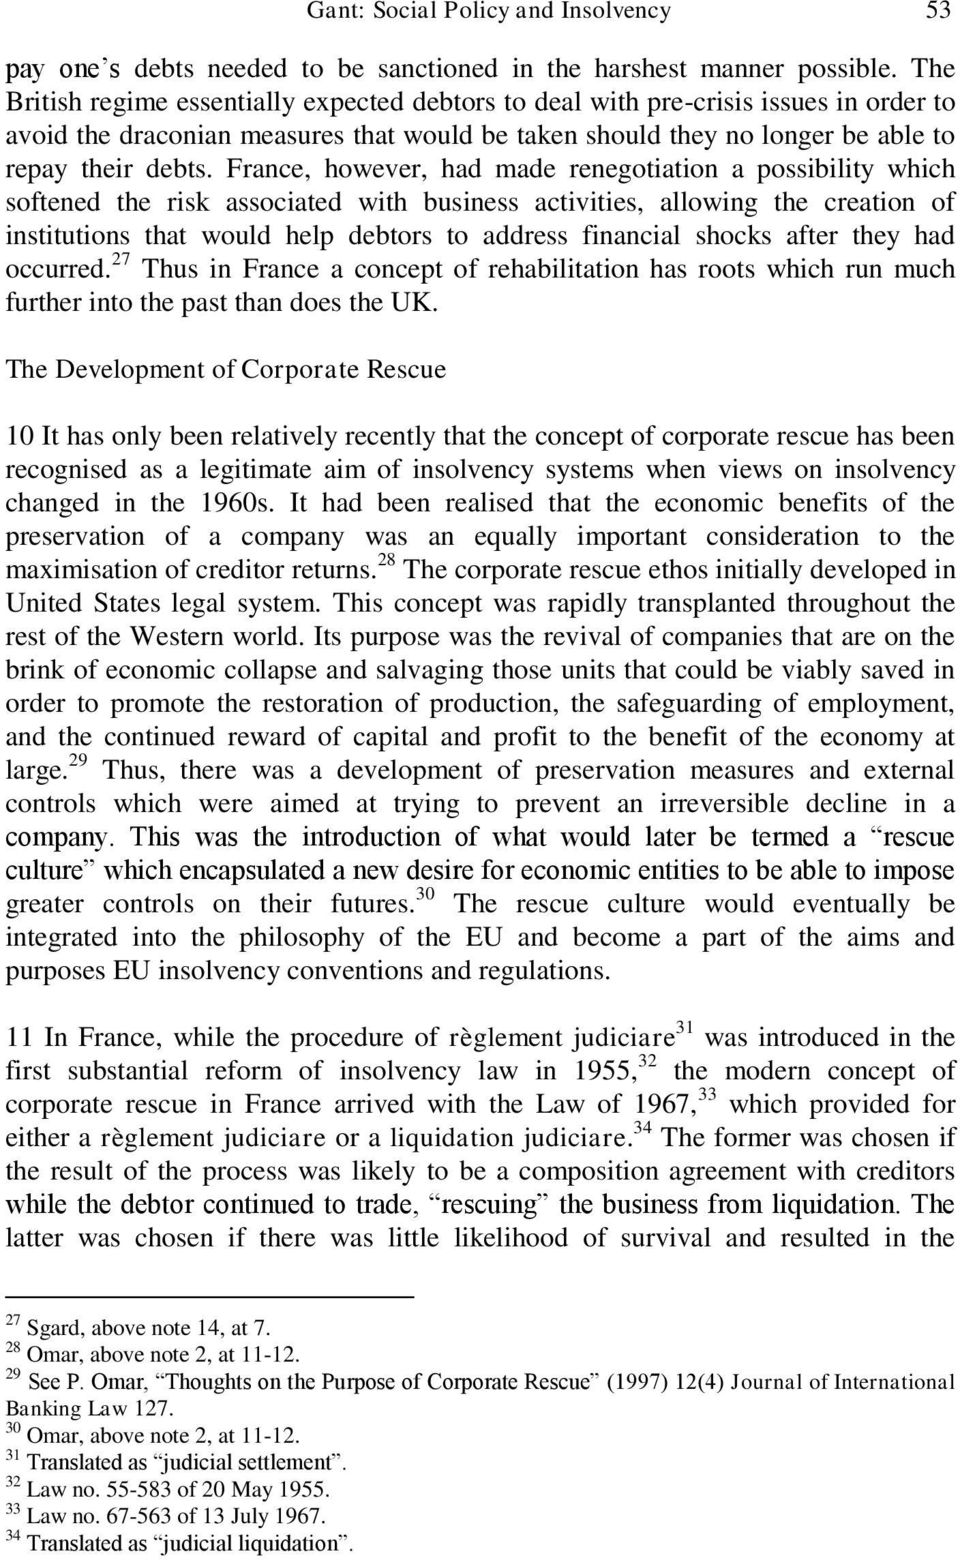 France, however, had made renegotiation a possibility which softened the risk associated with business activities, allowing the creation of institutions that would help debtors to address financial